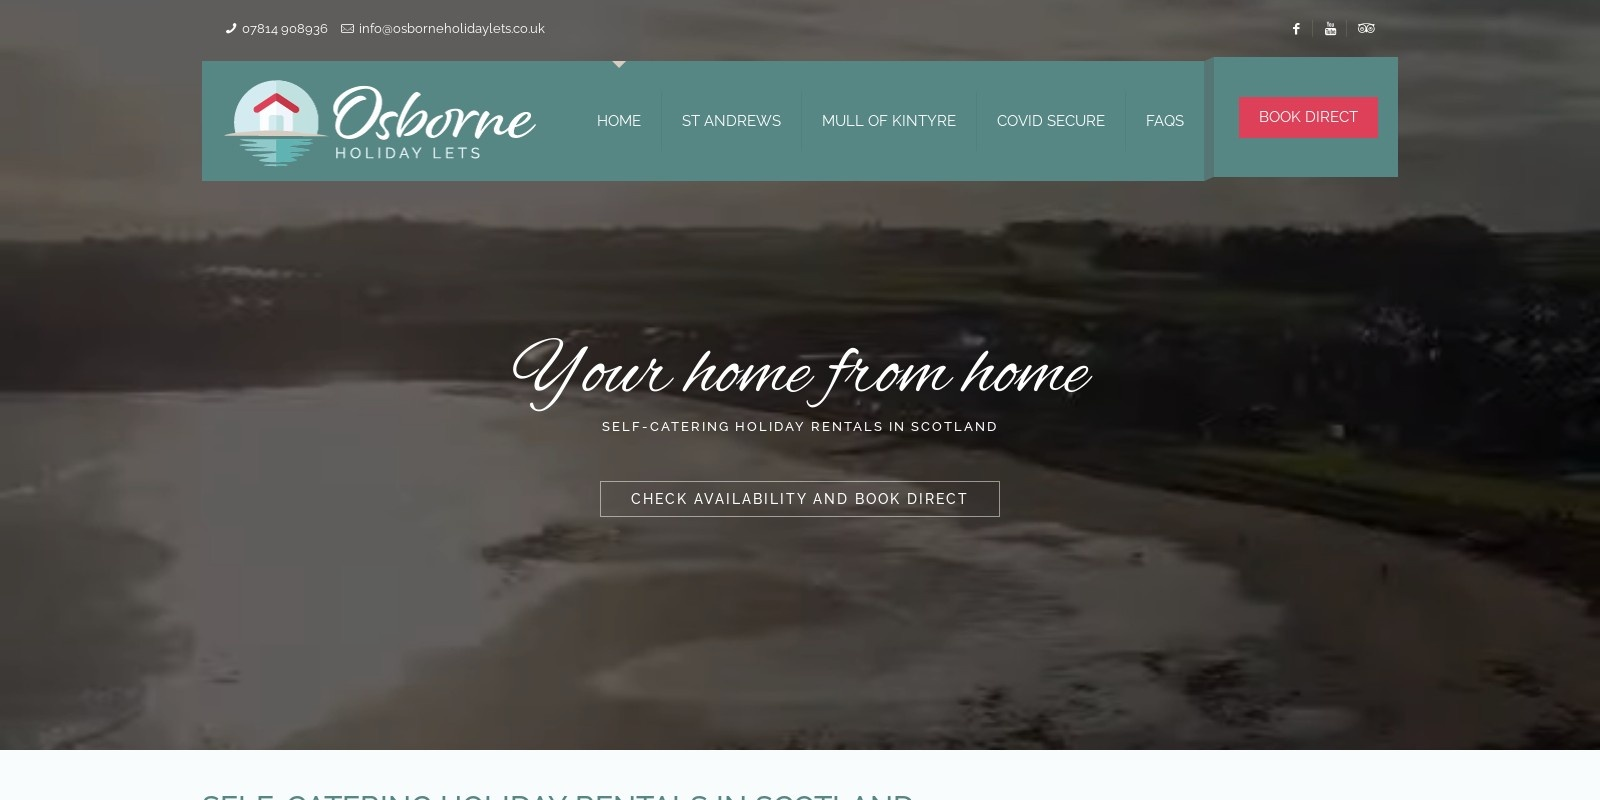 Preview of https://www.osborneholidaylets.co.uk/